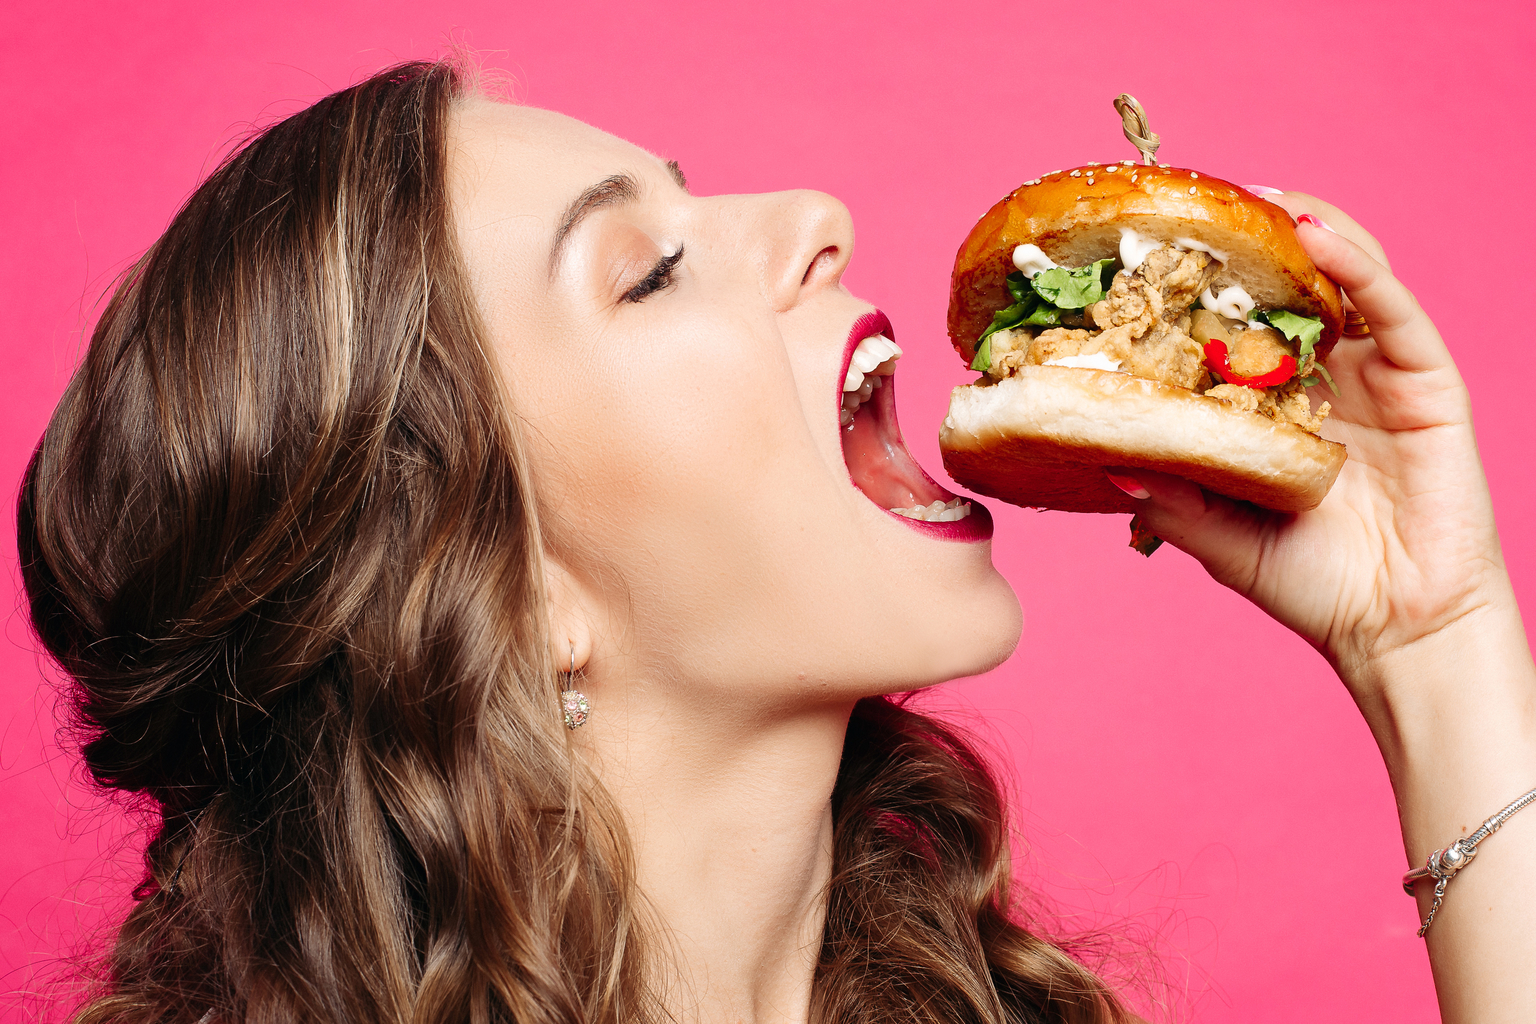 Eat intuitively, not restrictively